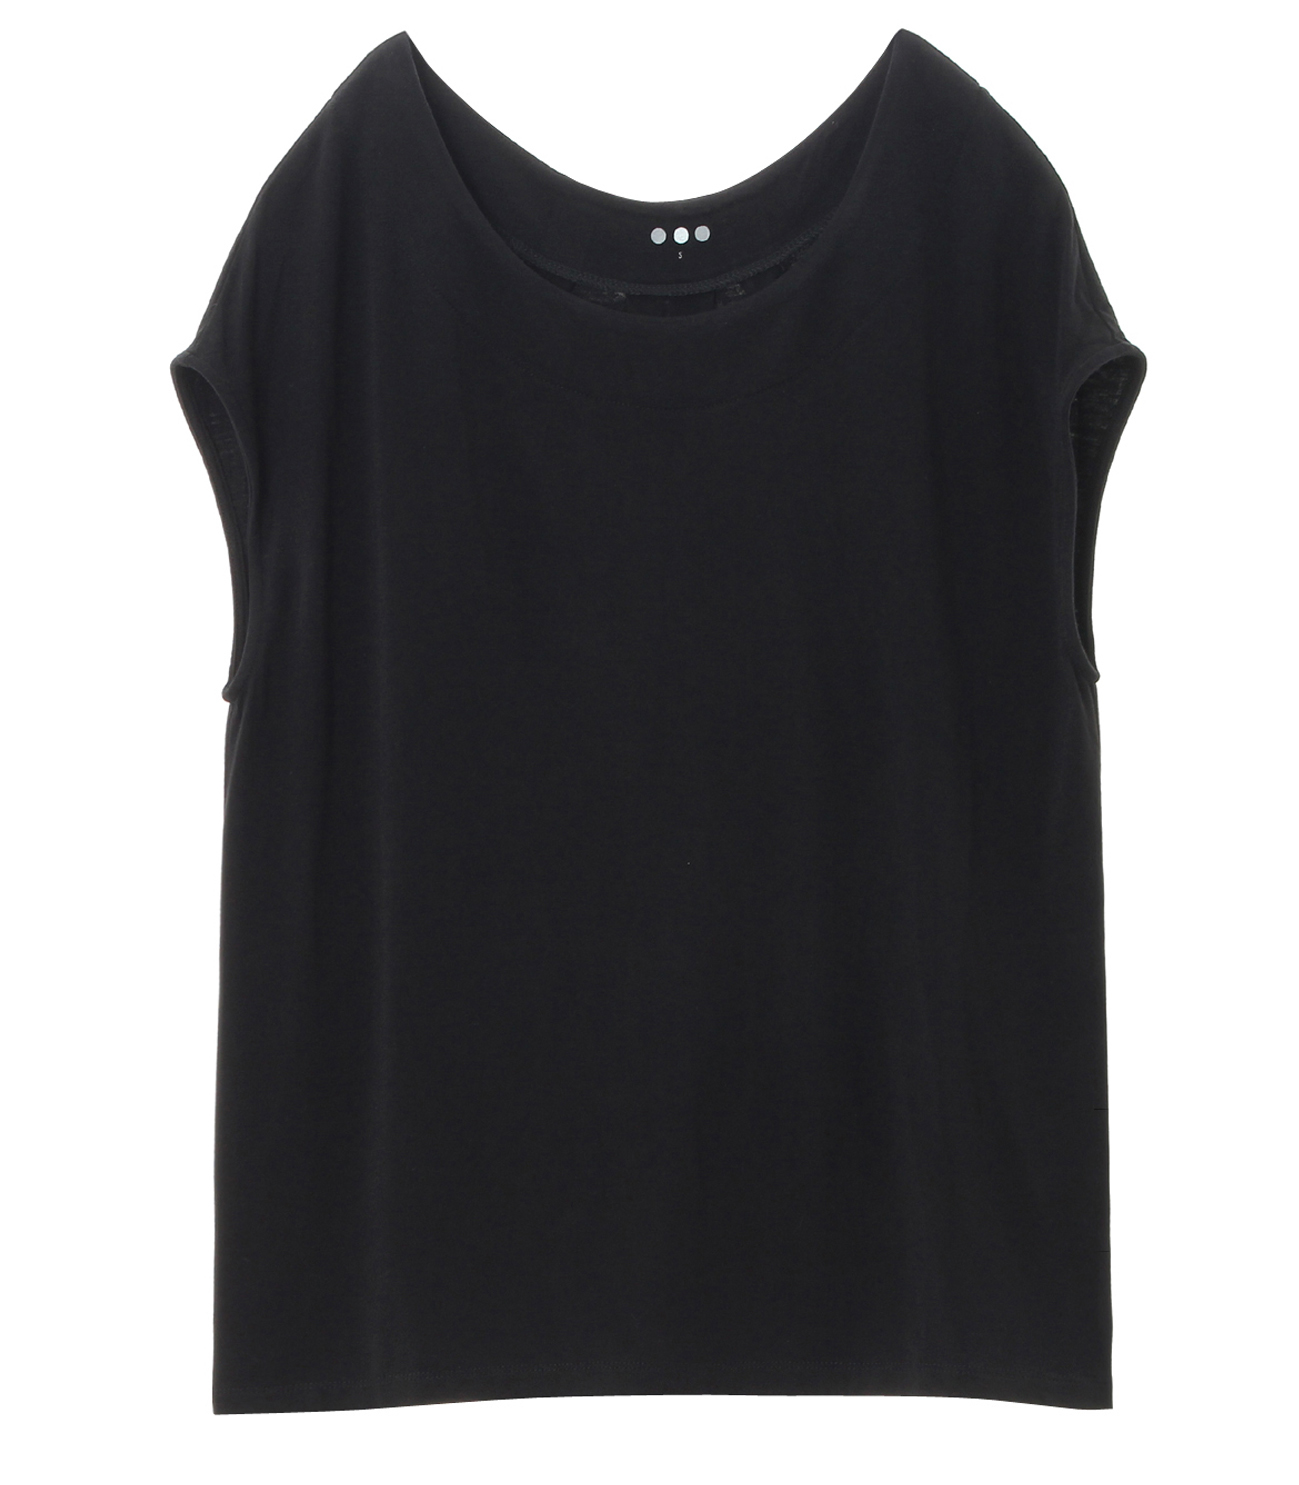 refined jersey top with back detall 詳細画像 black 1